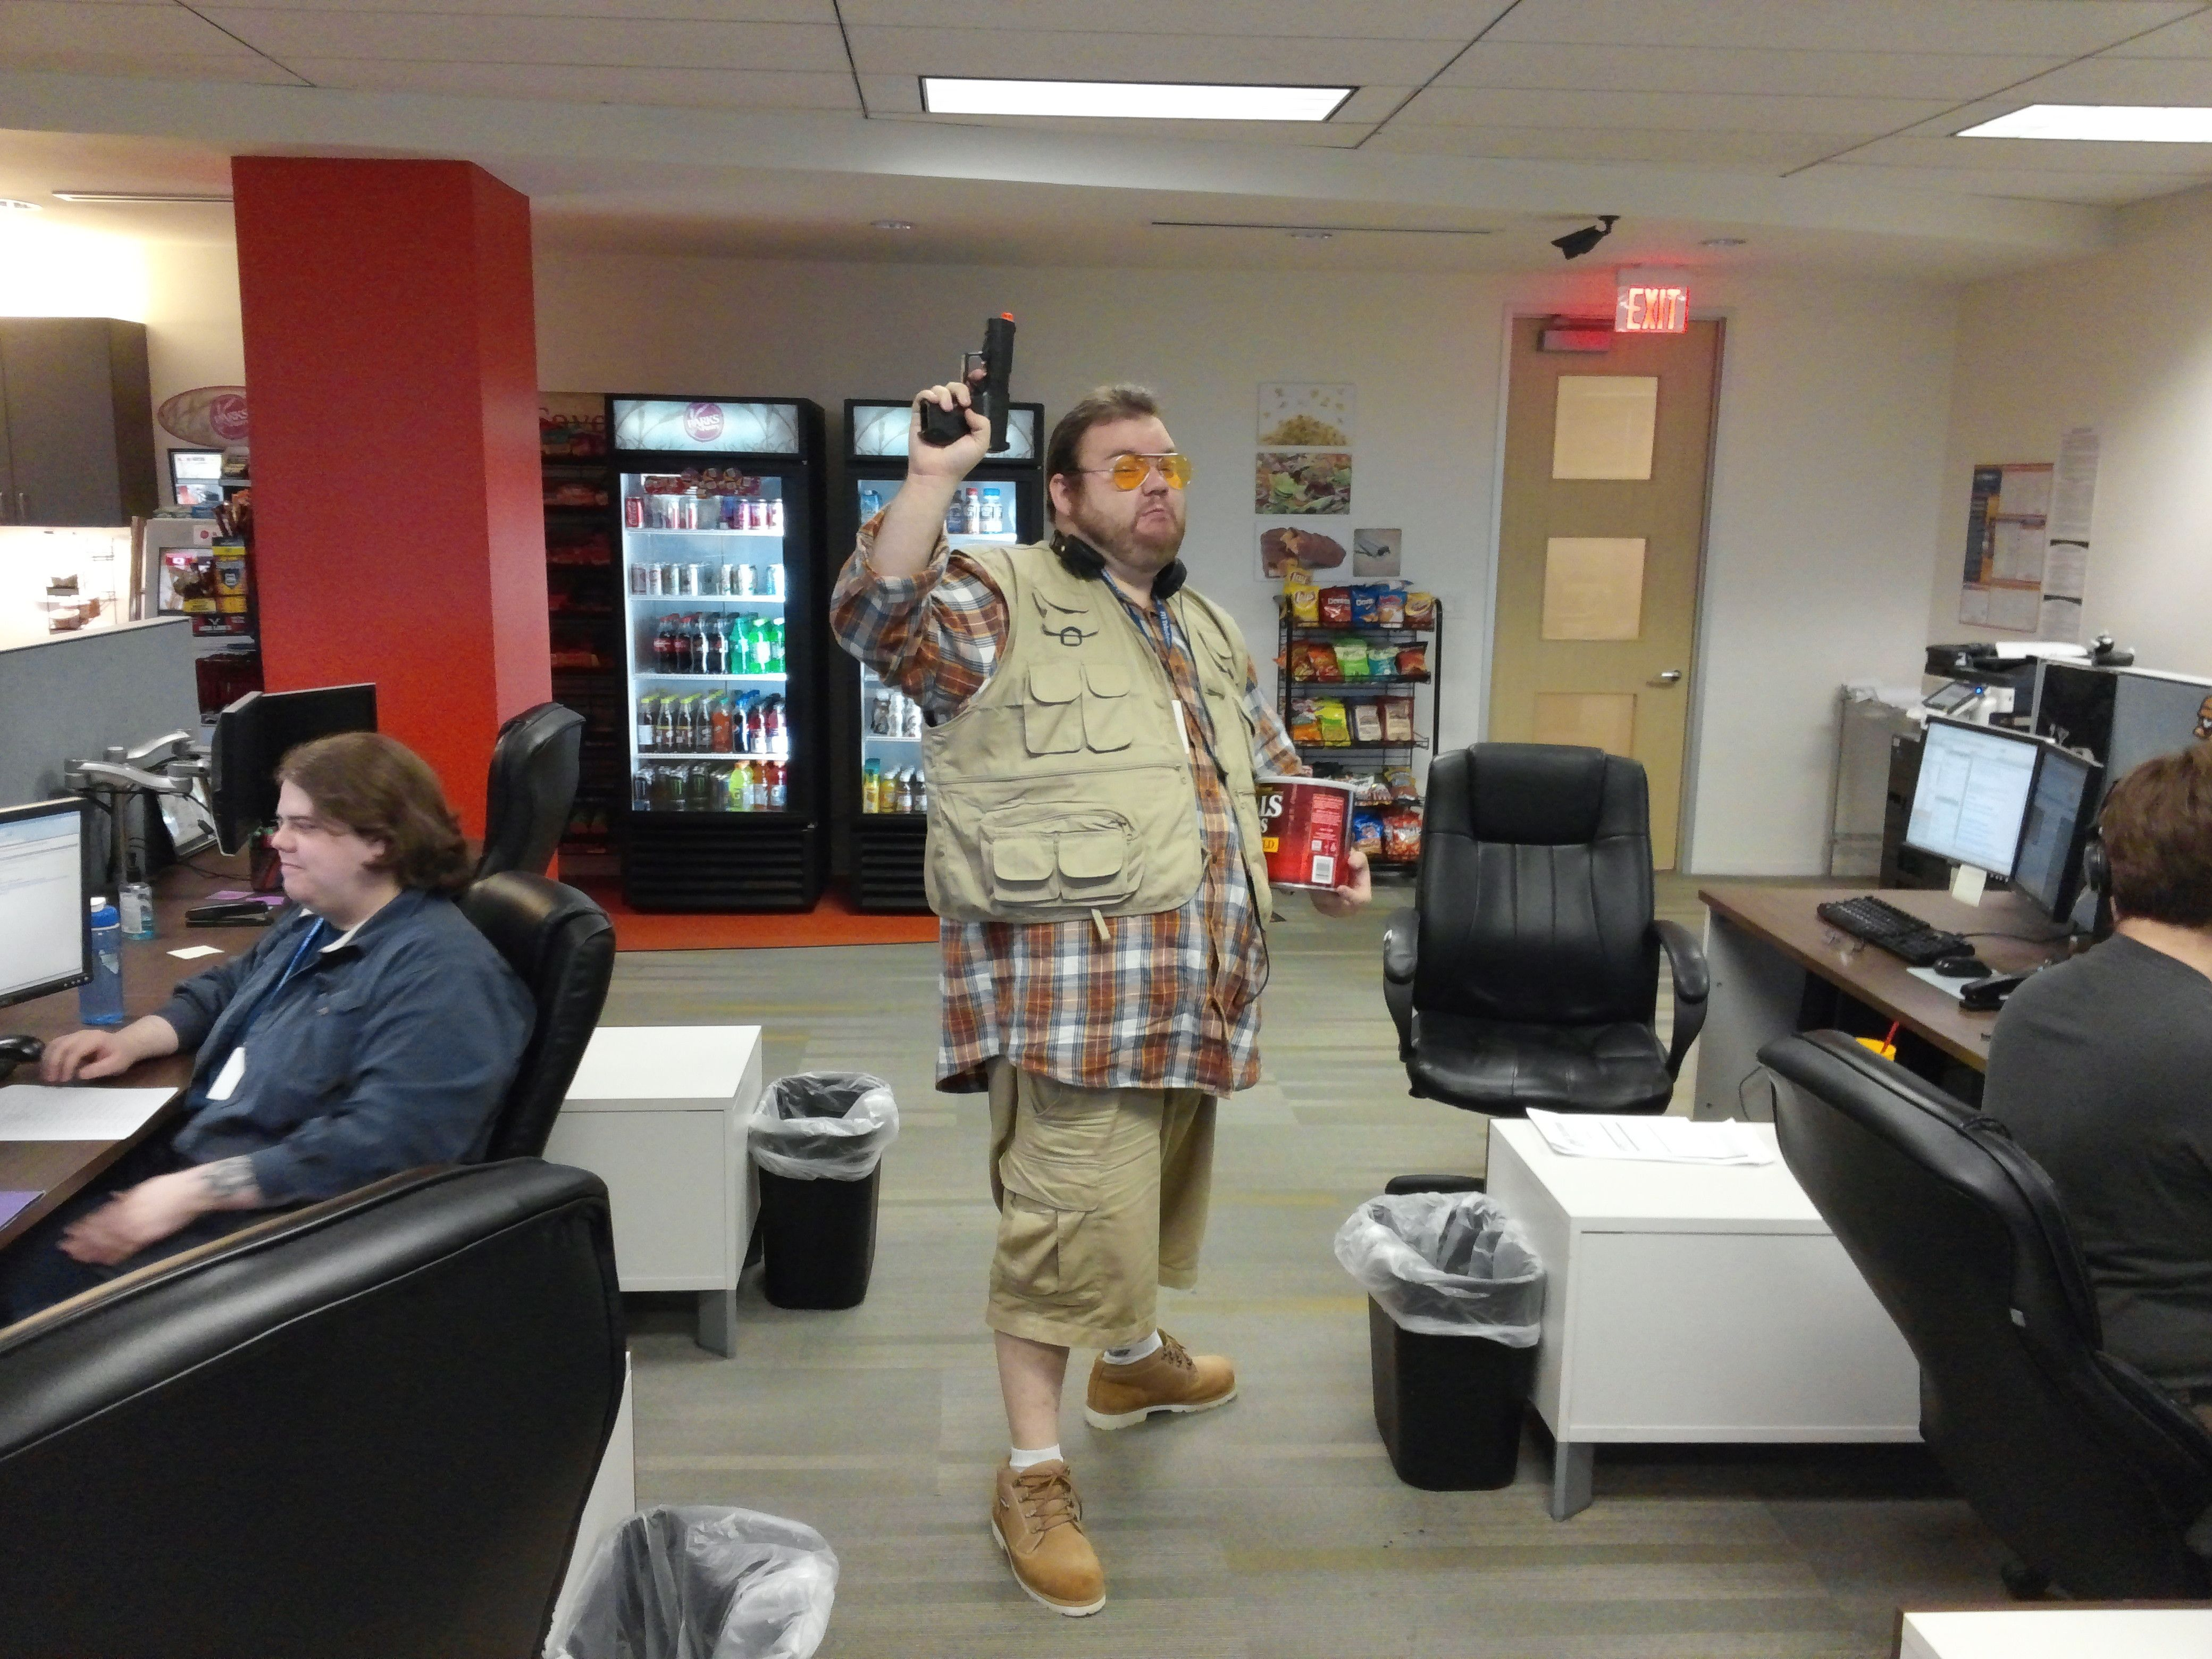 The best pictures of people wearing Halloween costumes at work.